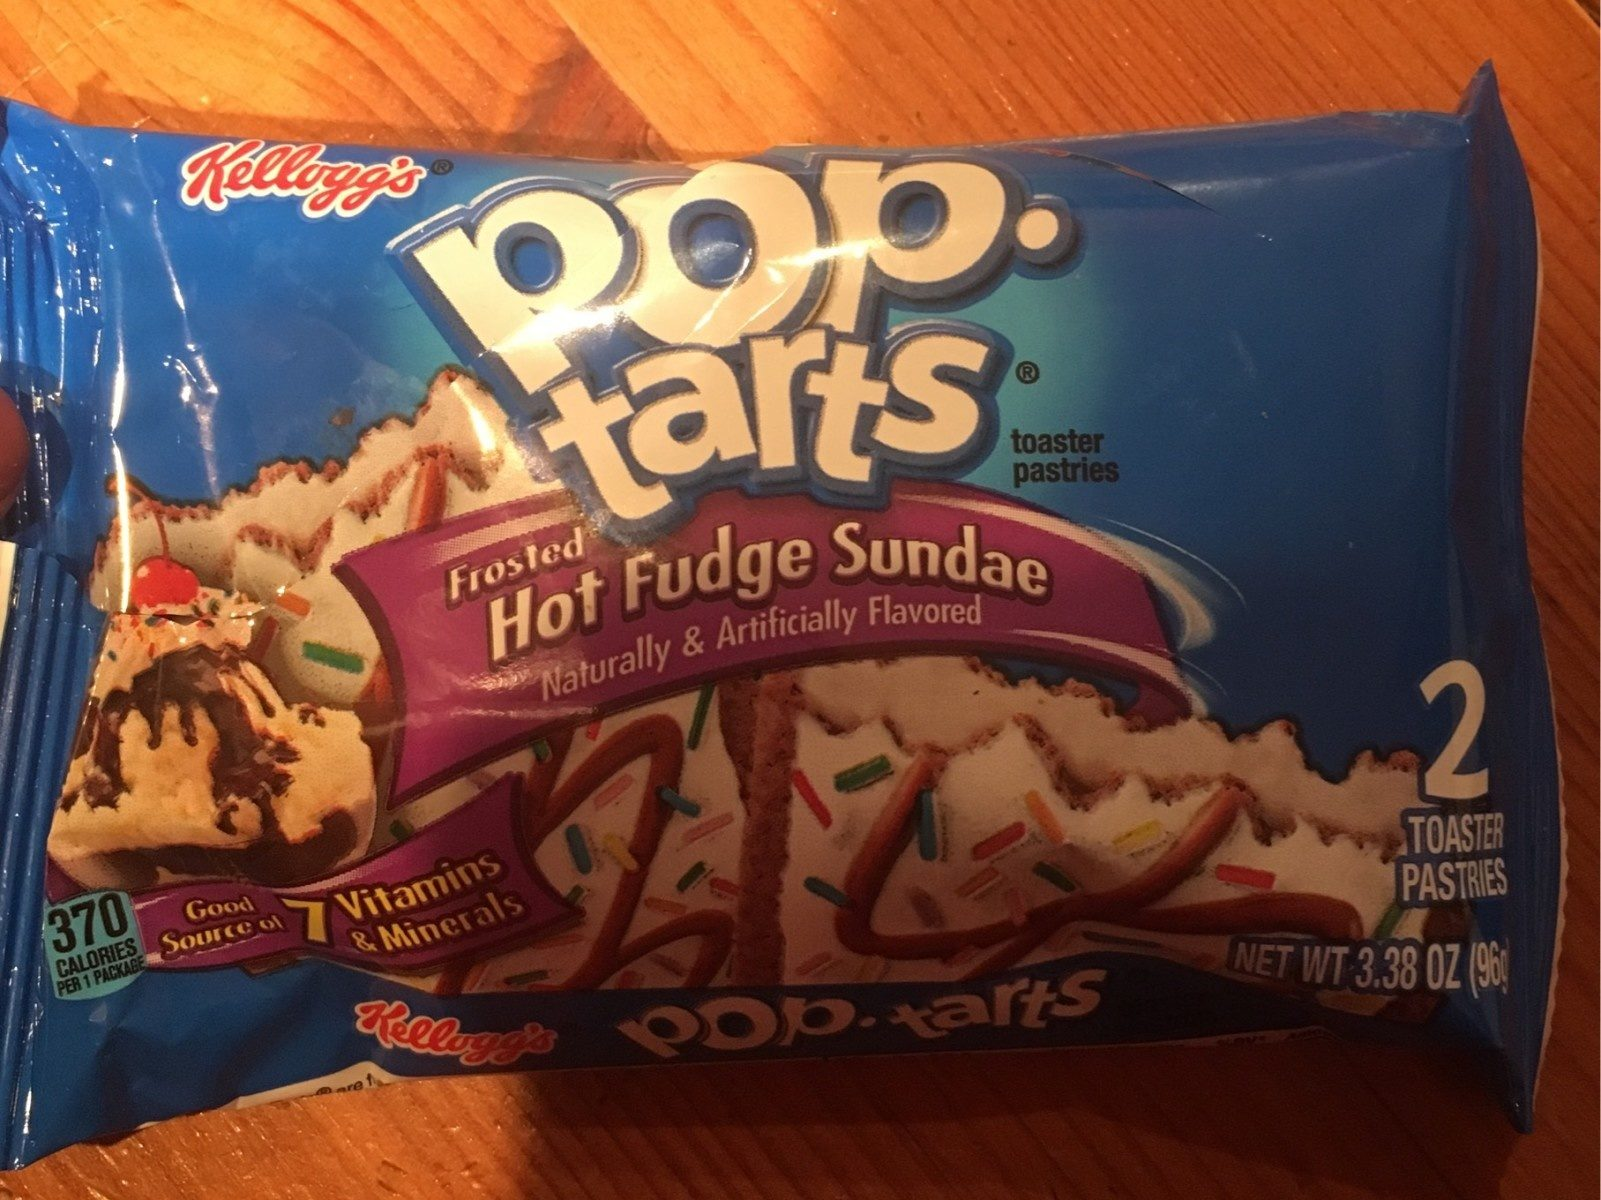 Frosted hot fudge sundae toaster pastries, frosted hot fudge sundae - Produit - fr